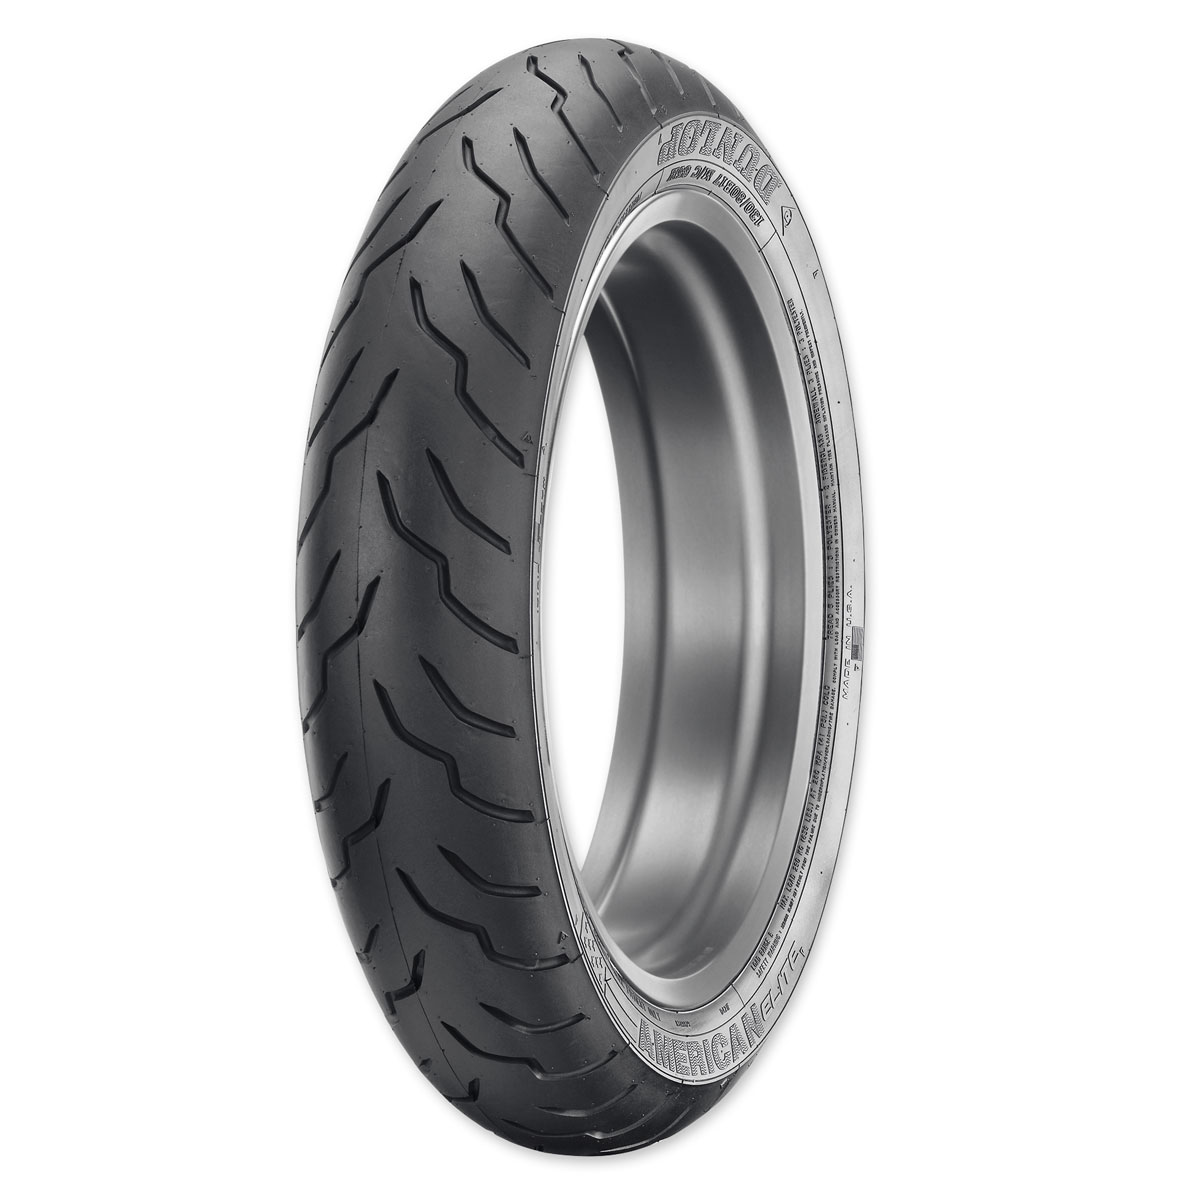 Motorcycle Tires Save Big On Jp Cycles Rocket Rims Plug Wiring Diagram Dunlop American Elite 130 80b17 Front Tire